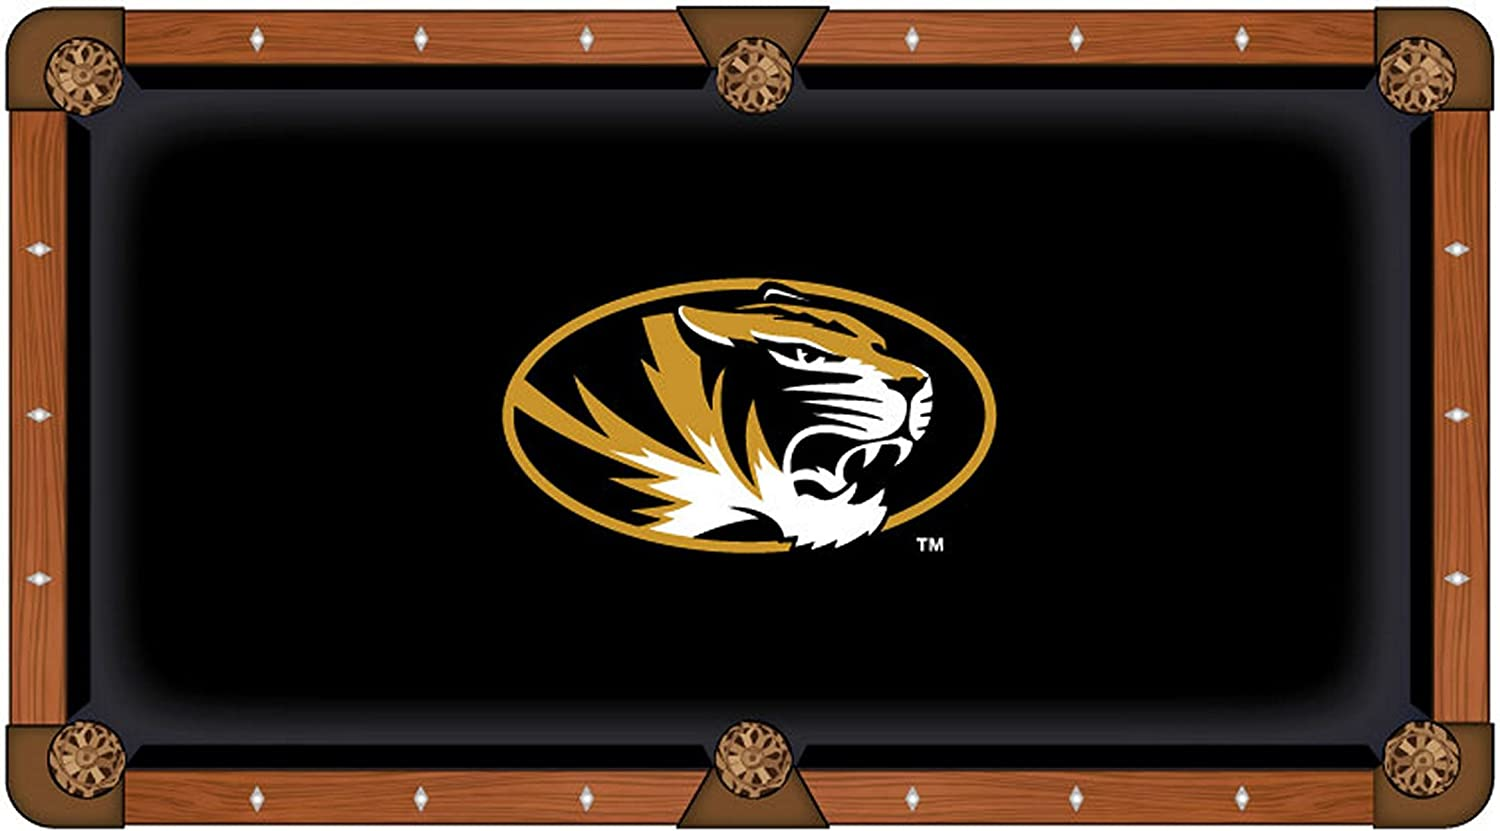 Missouri Tigers HBSブラックwith Mizzou